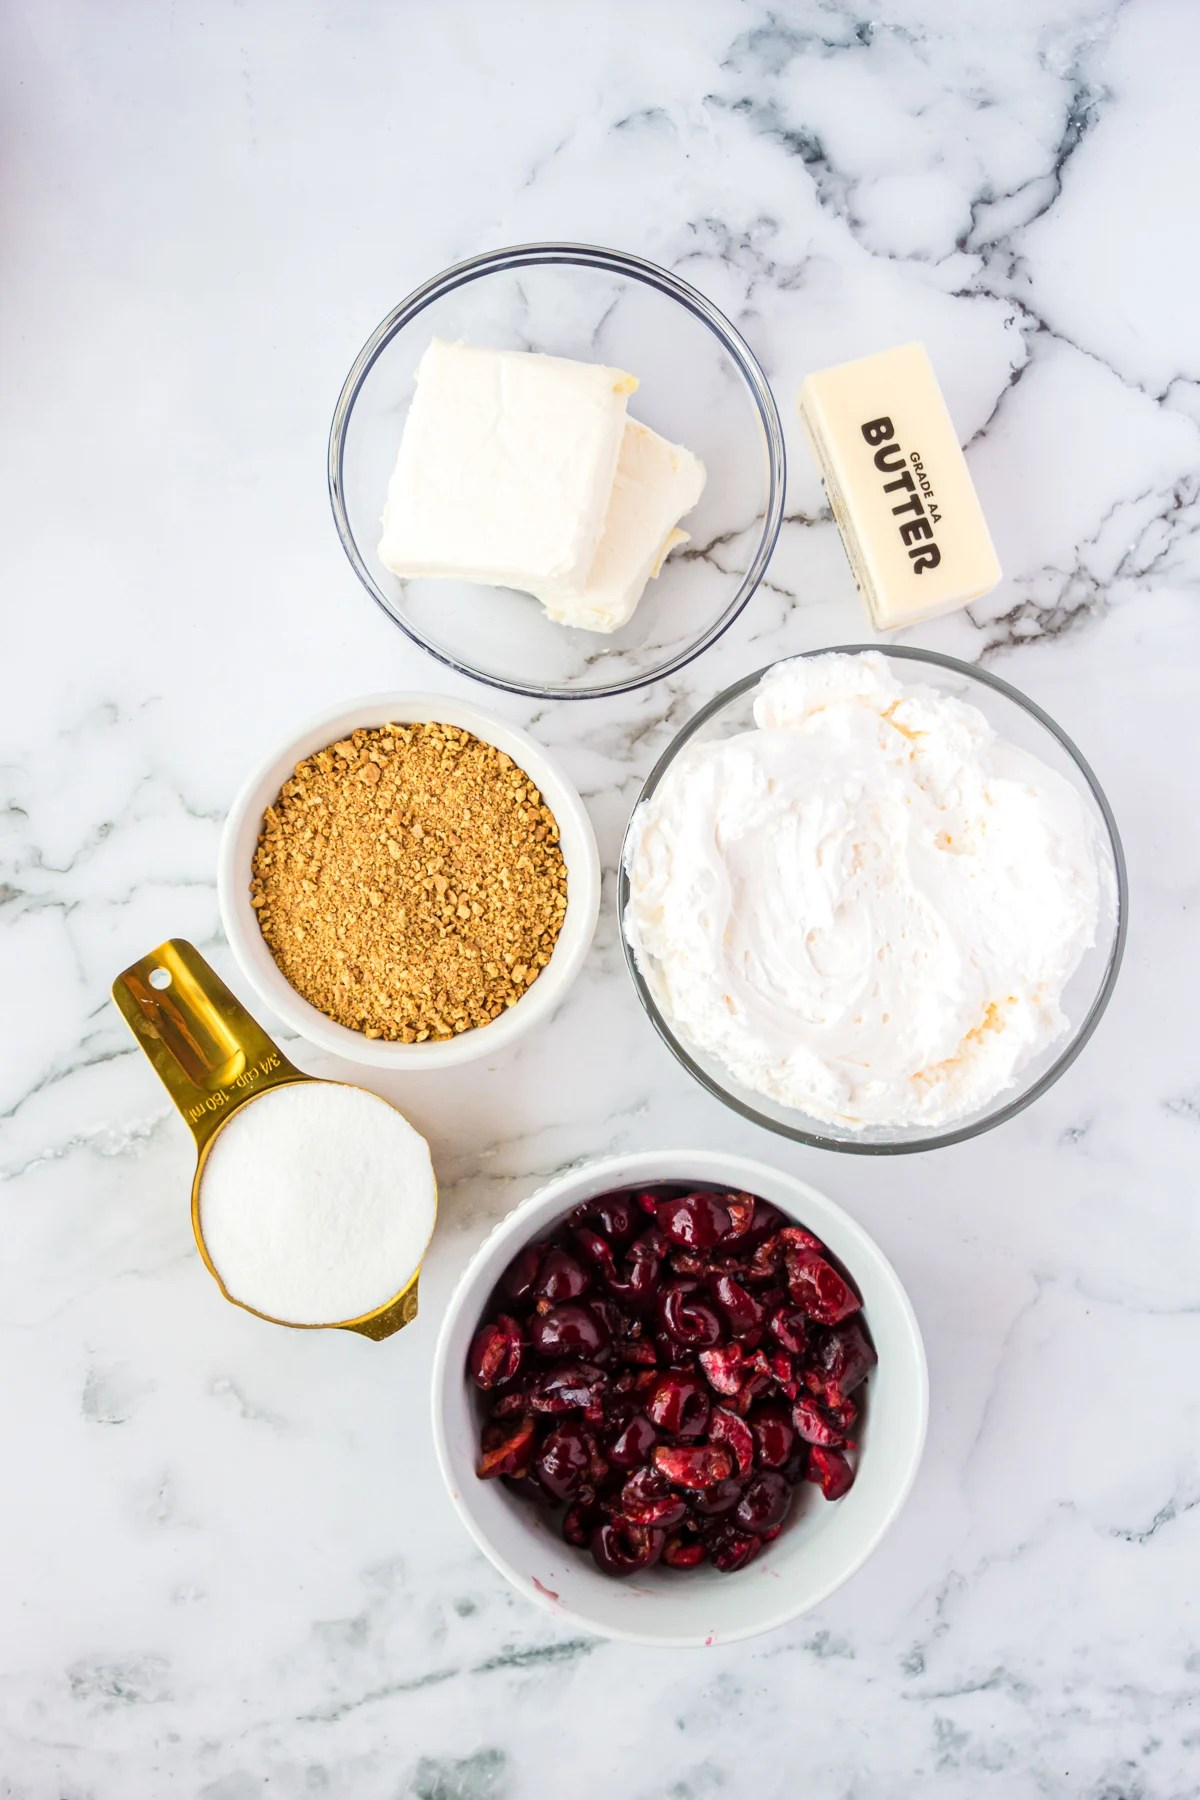 Ingredients needed to make a Cherry Cheesecake